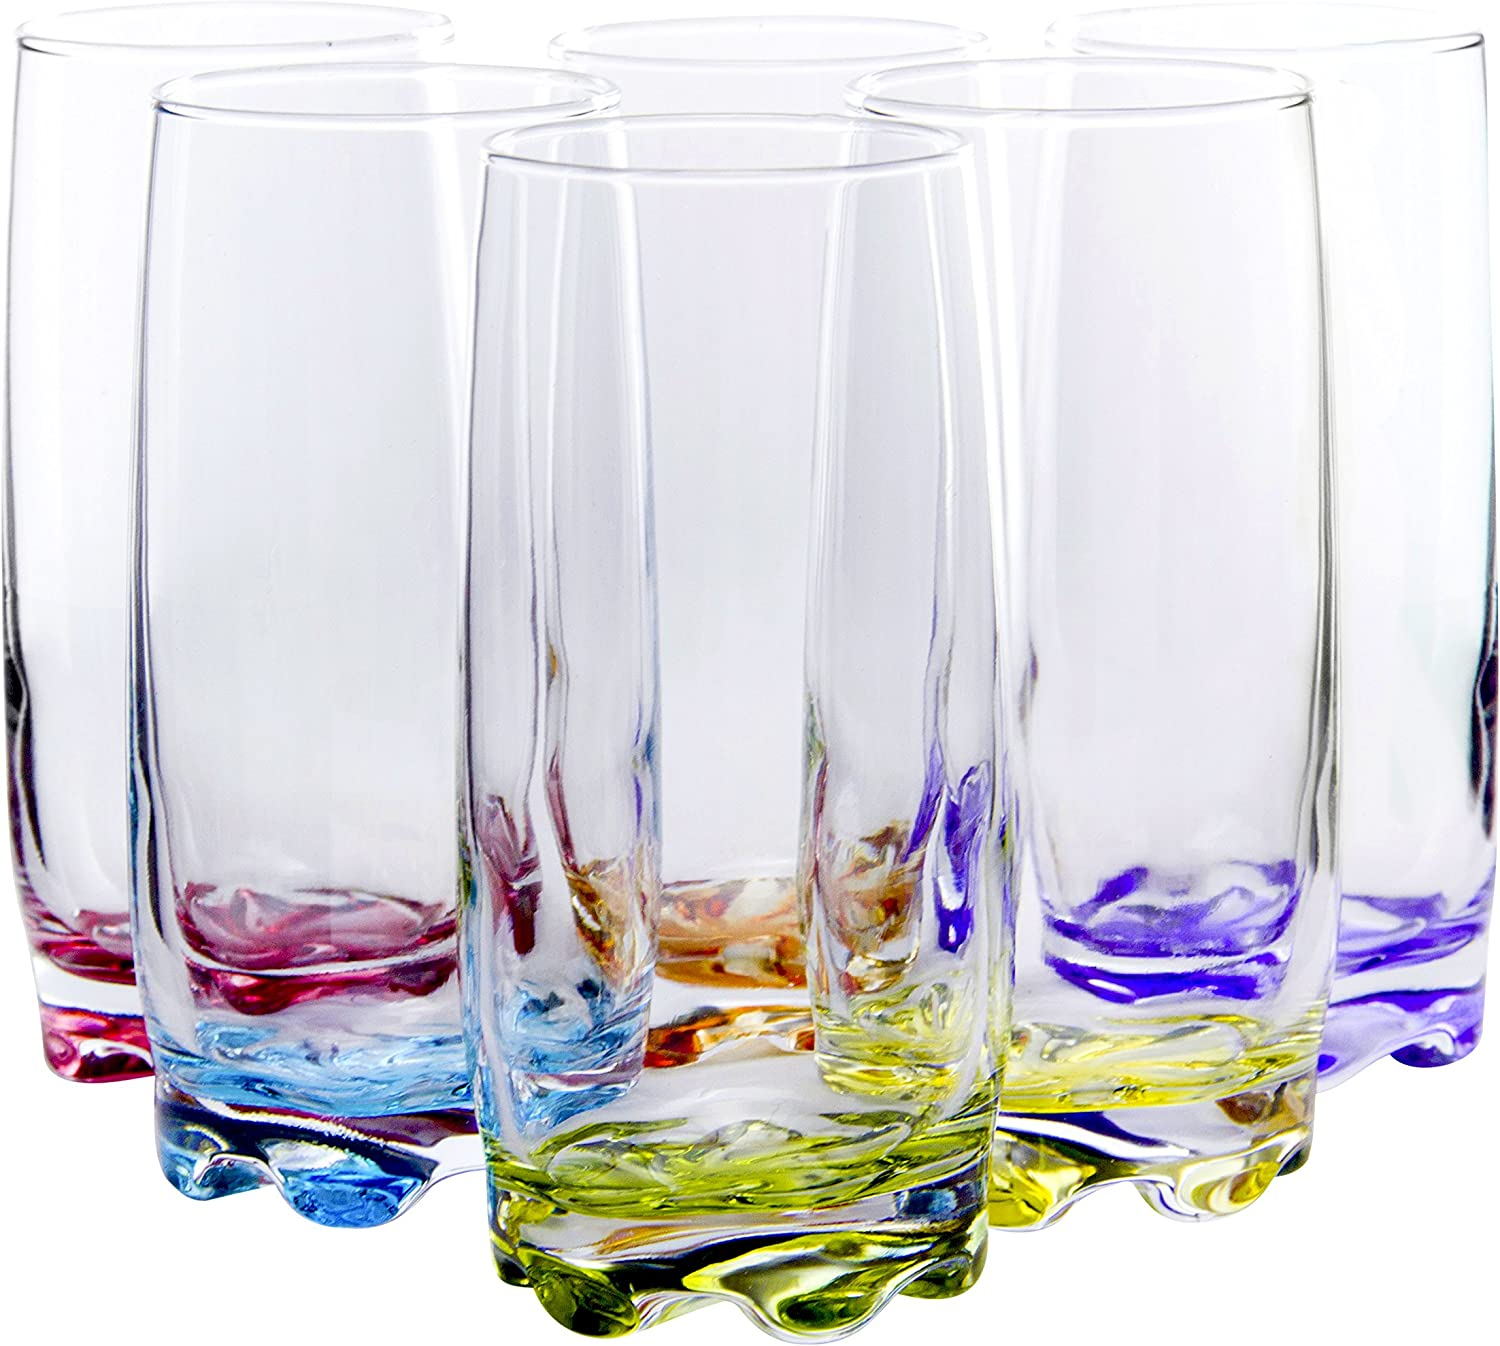 Vibrant Splash Water/Beverage Highball Glasses, 13.25 Ounce - Set of 6